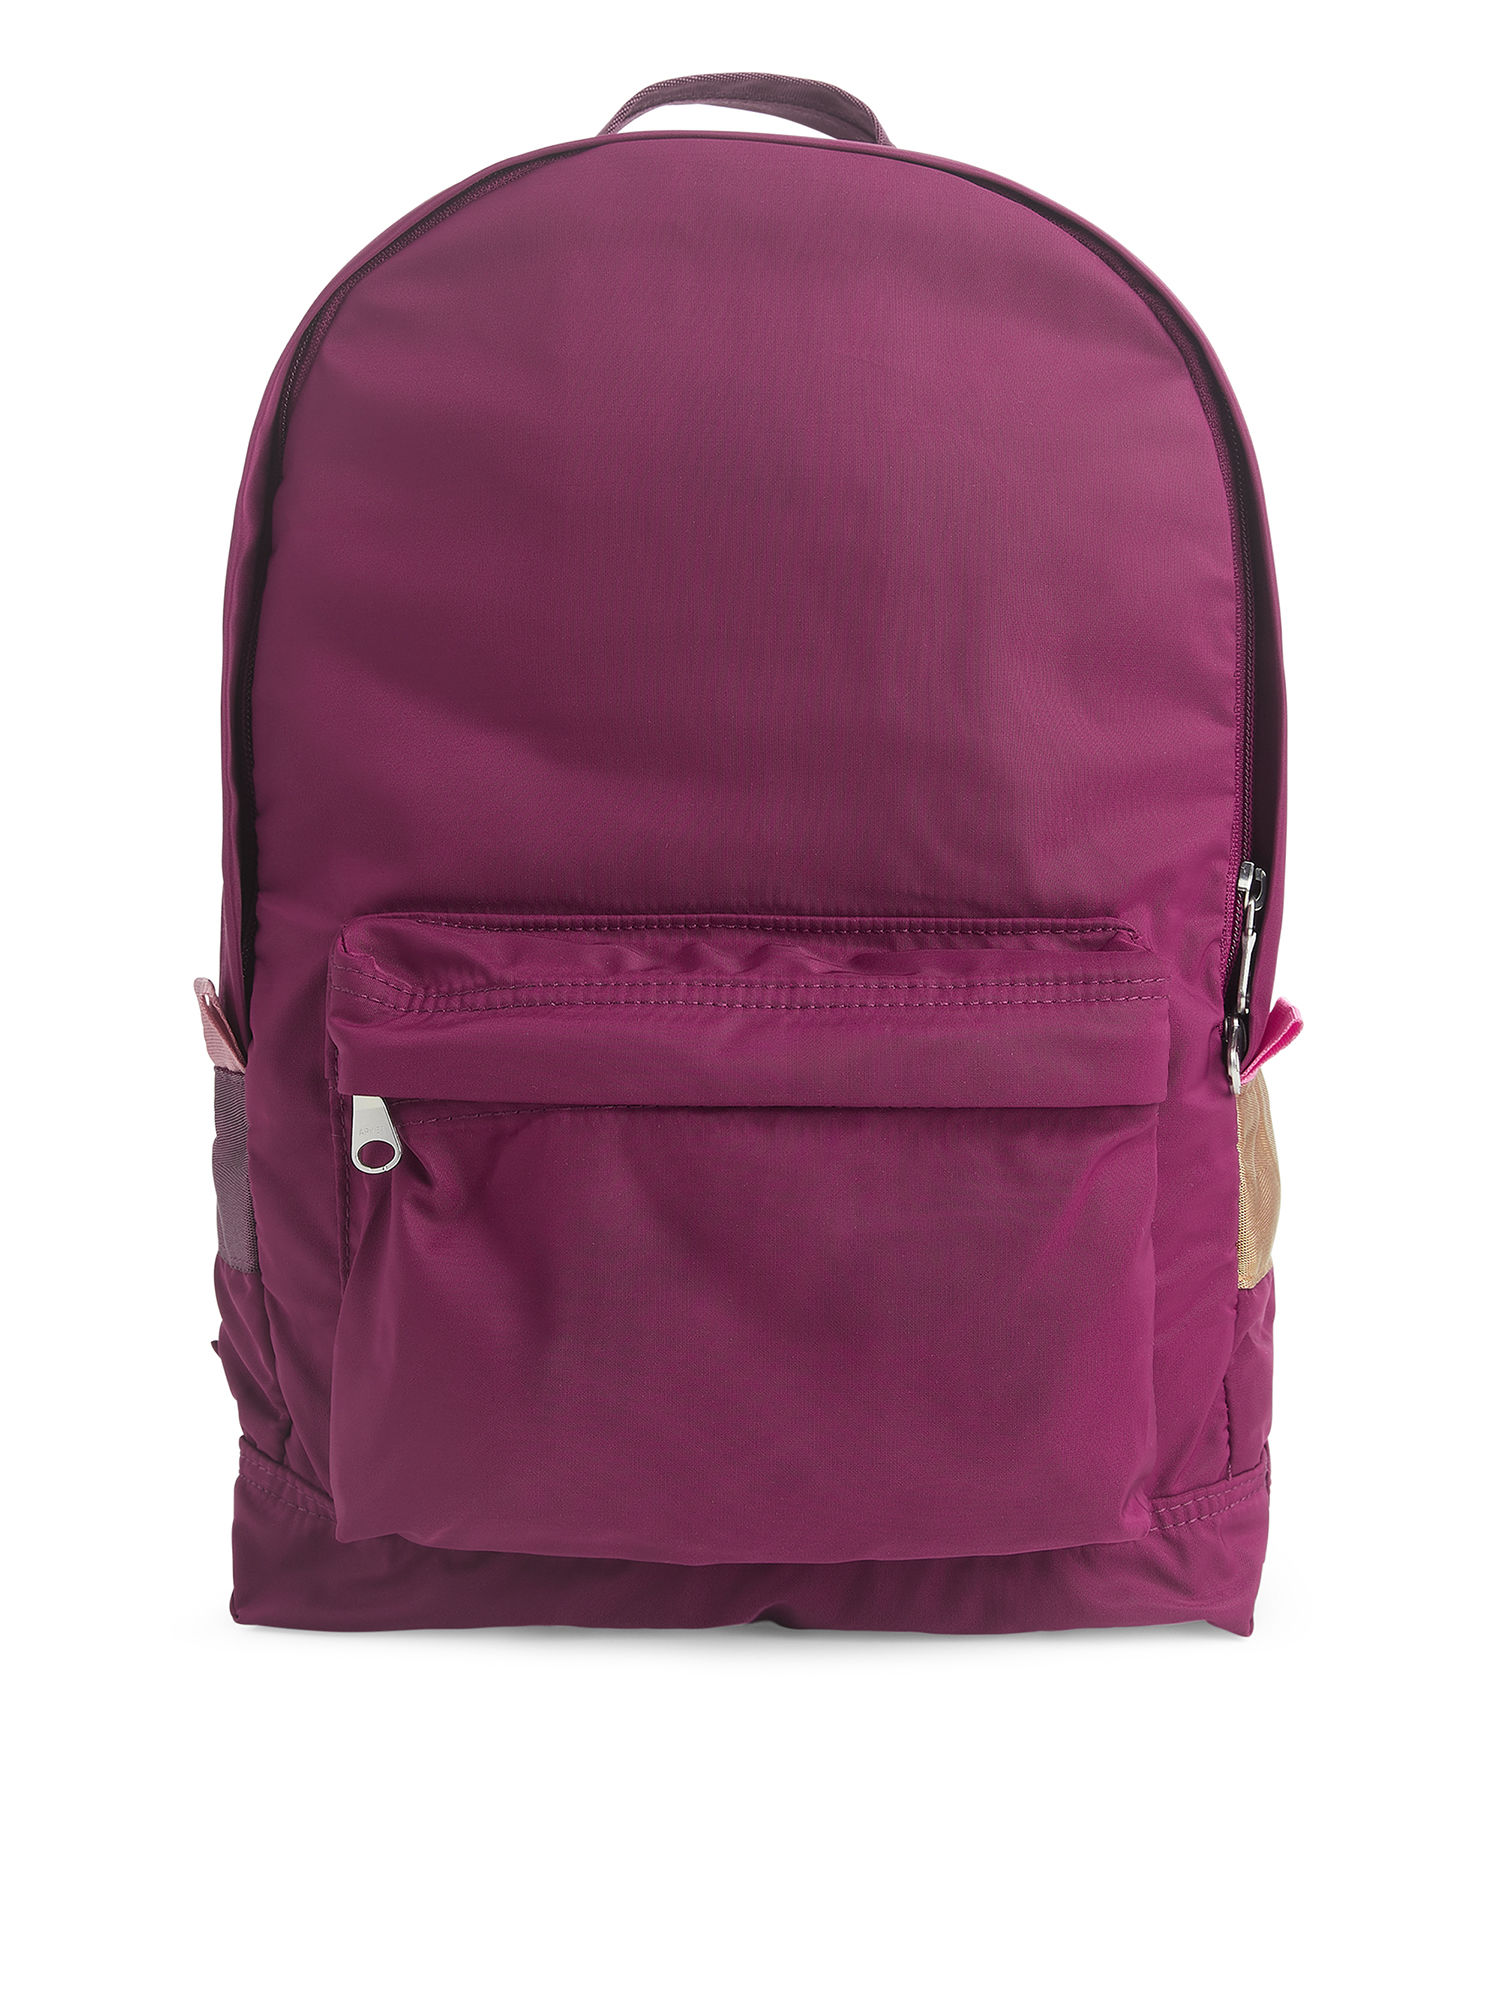 Fabric Swatch image of Arket water-repellent backpack in pink